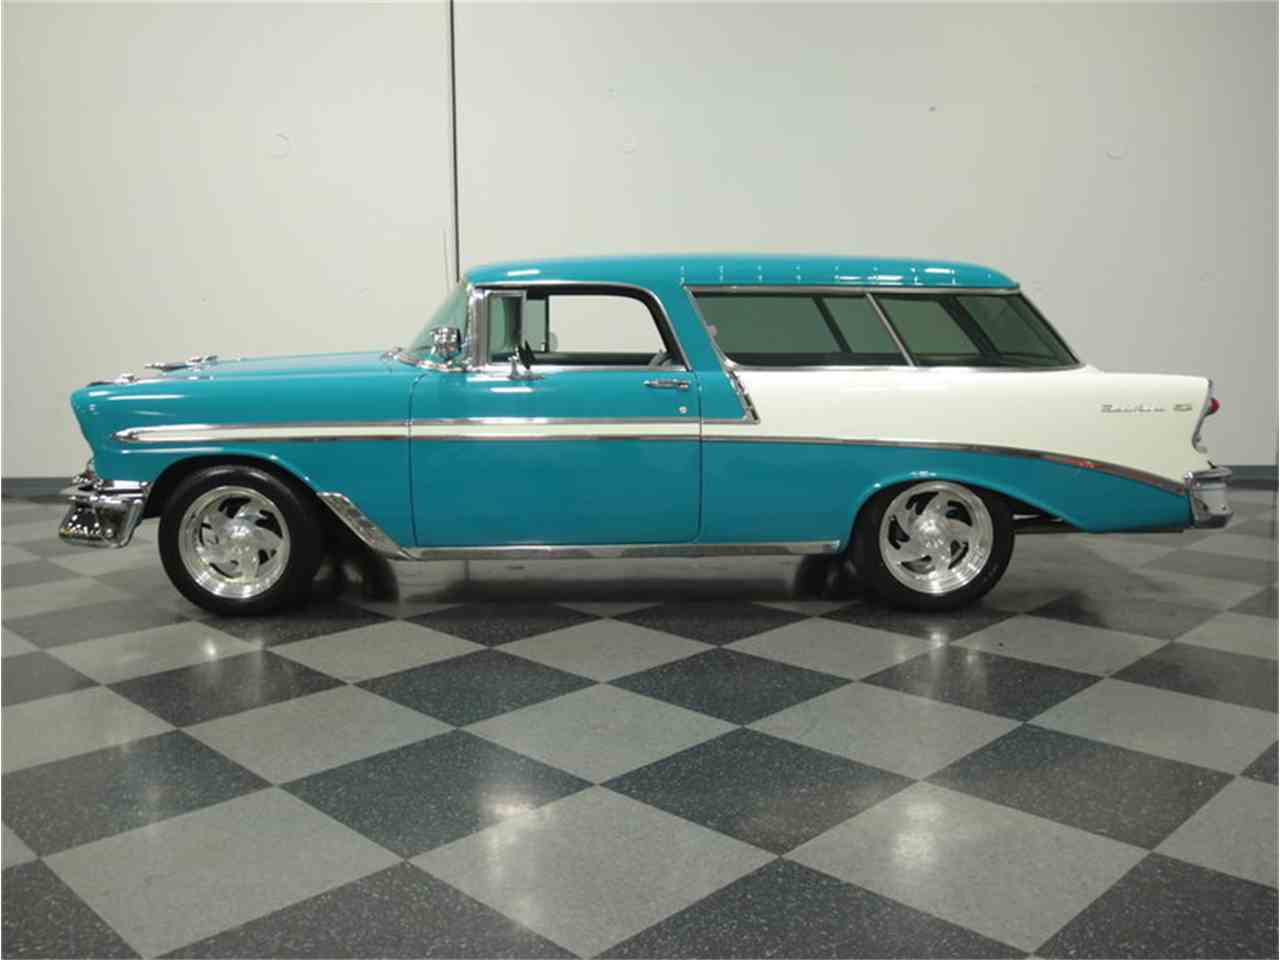 All Chevy 1956 chevy nomad for sale : 1956 Chevrolet Nomad for Sale | ClassicCars.com | CC-808652